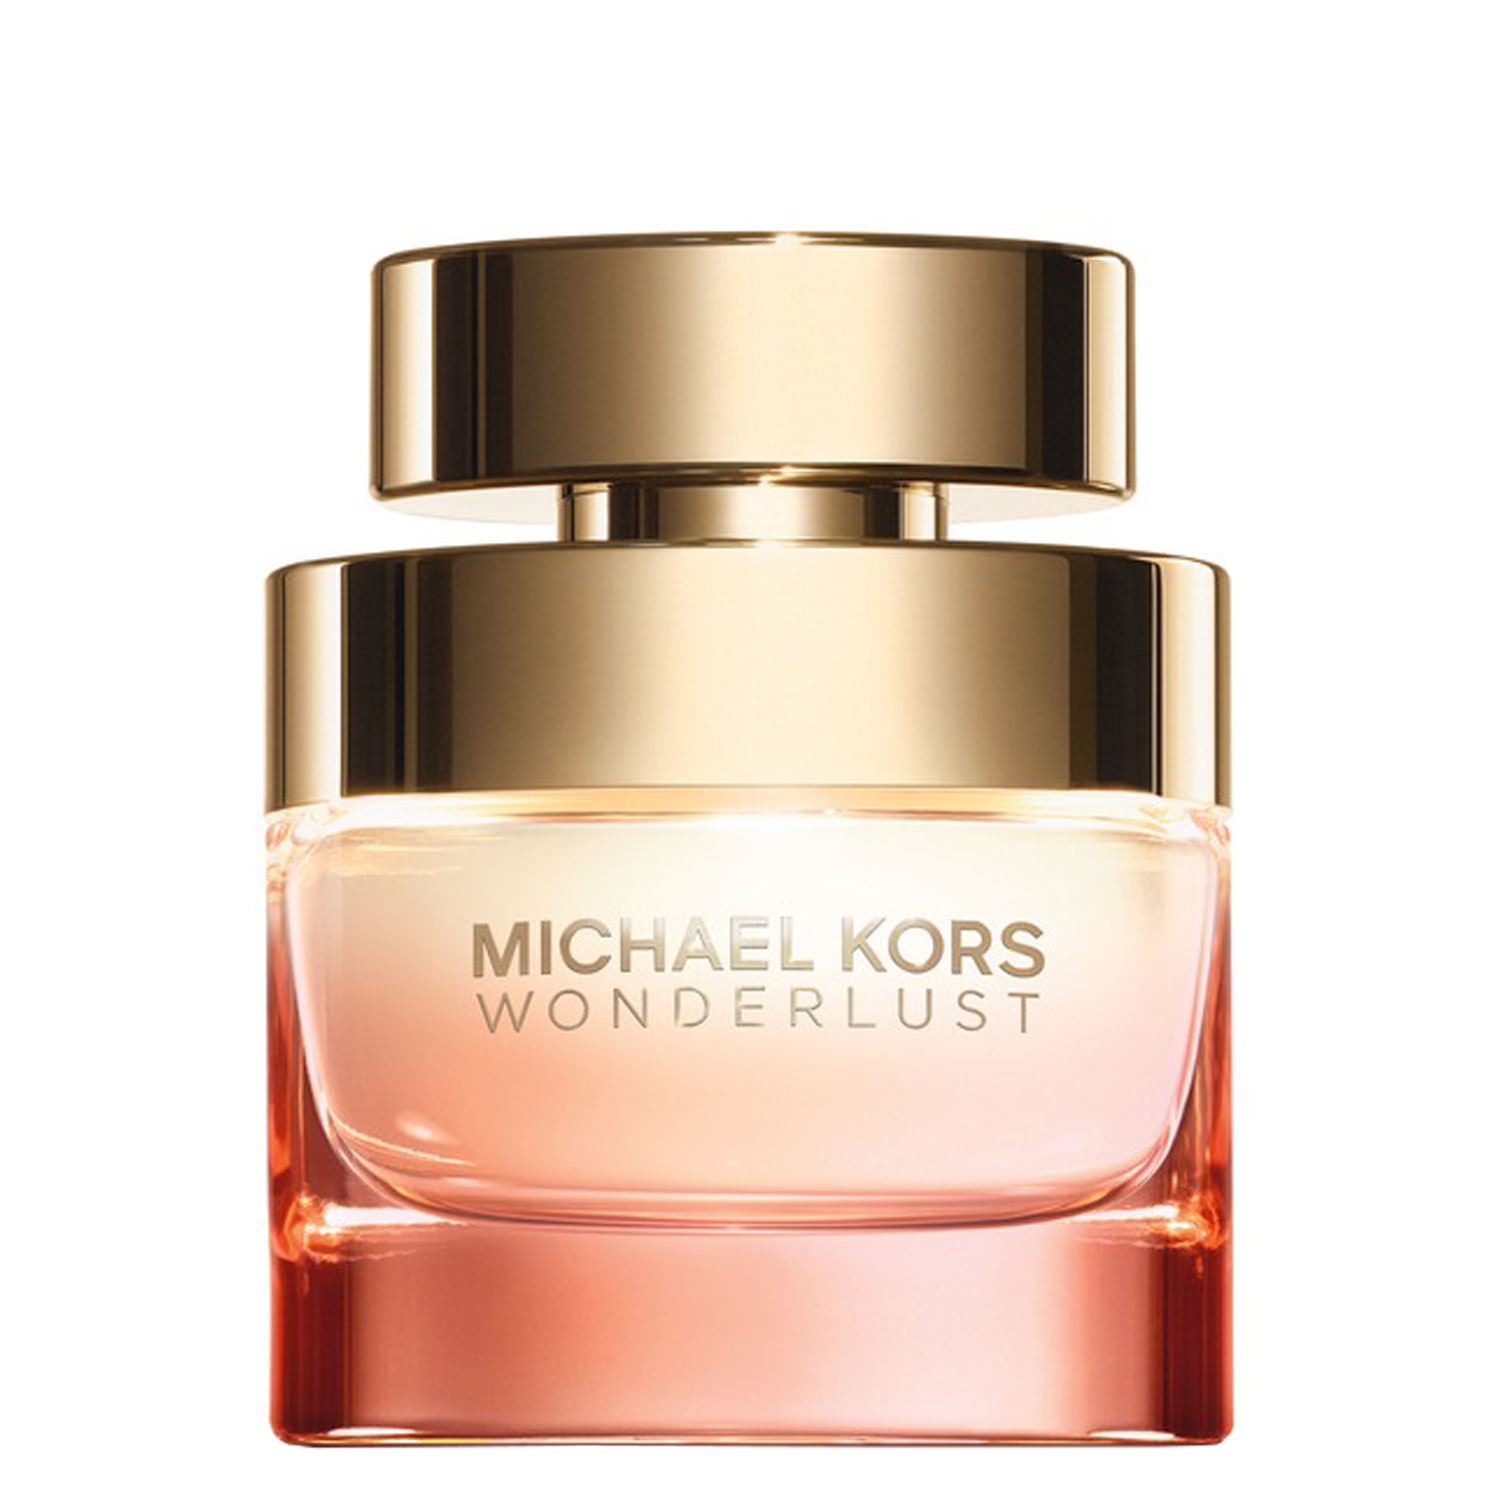 wonderlust eau de parfum michael kors. Black Bedroom Furniture Sets. Home Design Ideas